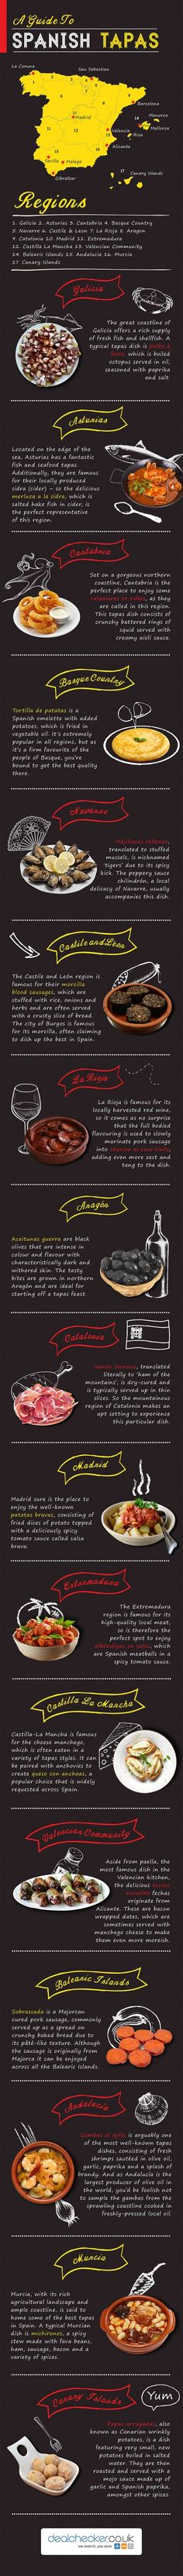 Ultimate Guide to Spanish Tapas Infographic #Infographics